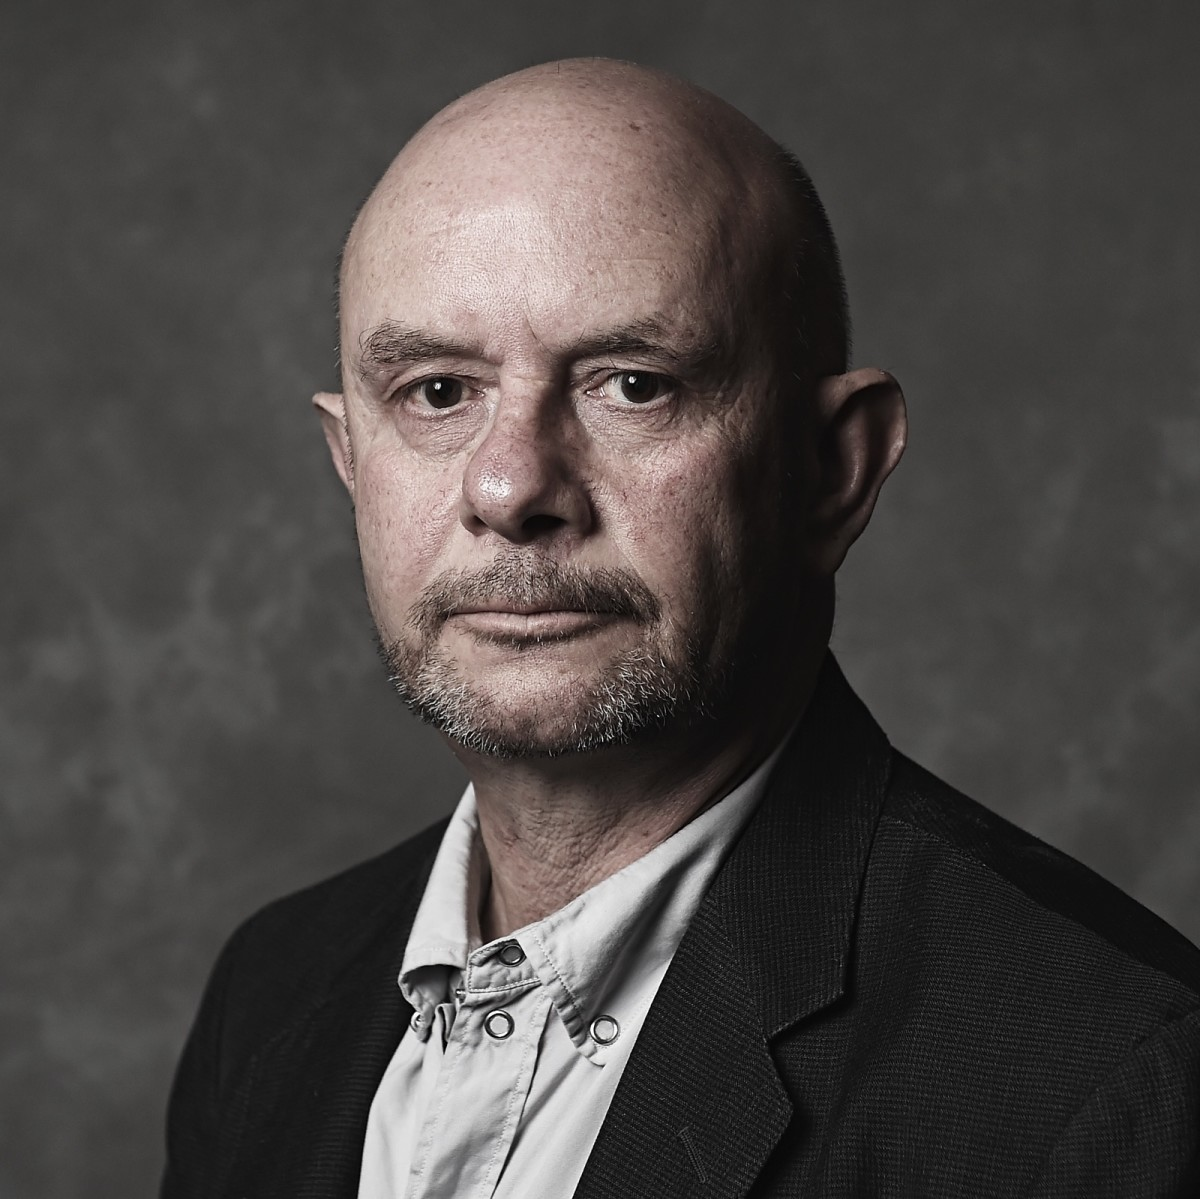 Nick Hornby photo via Getty Images